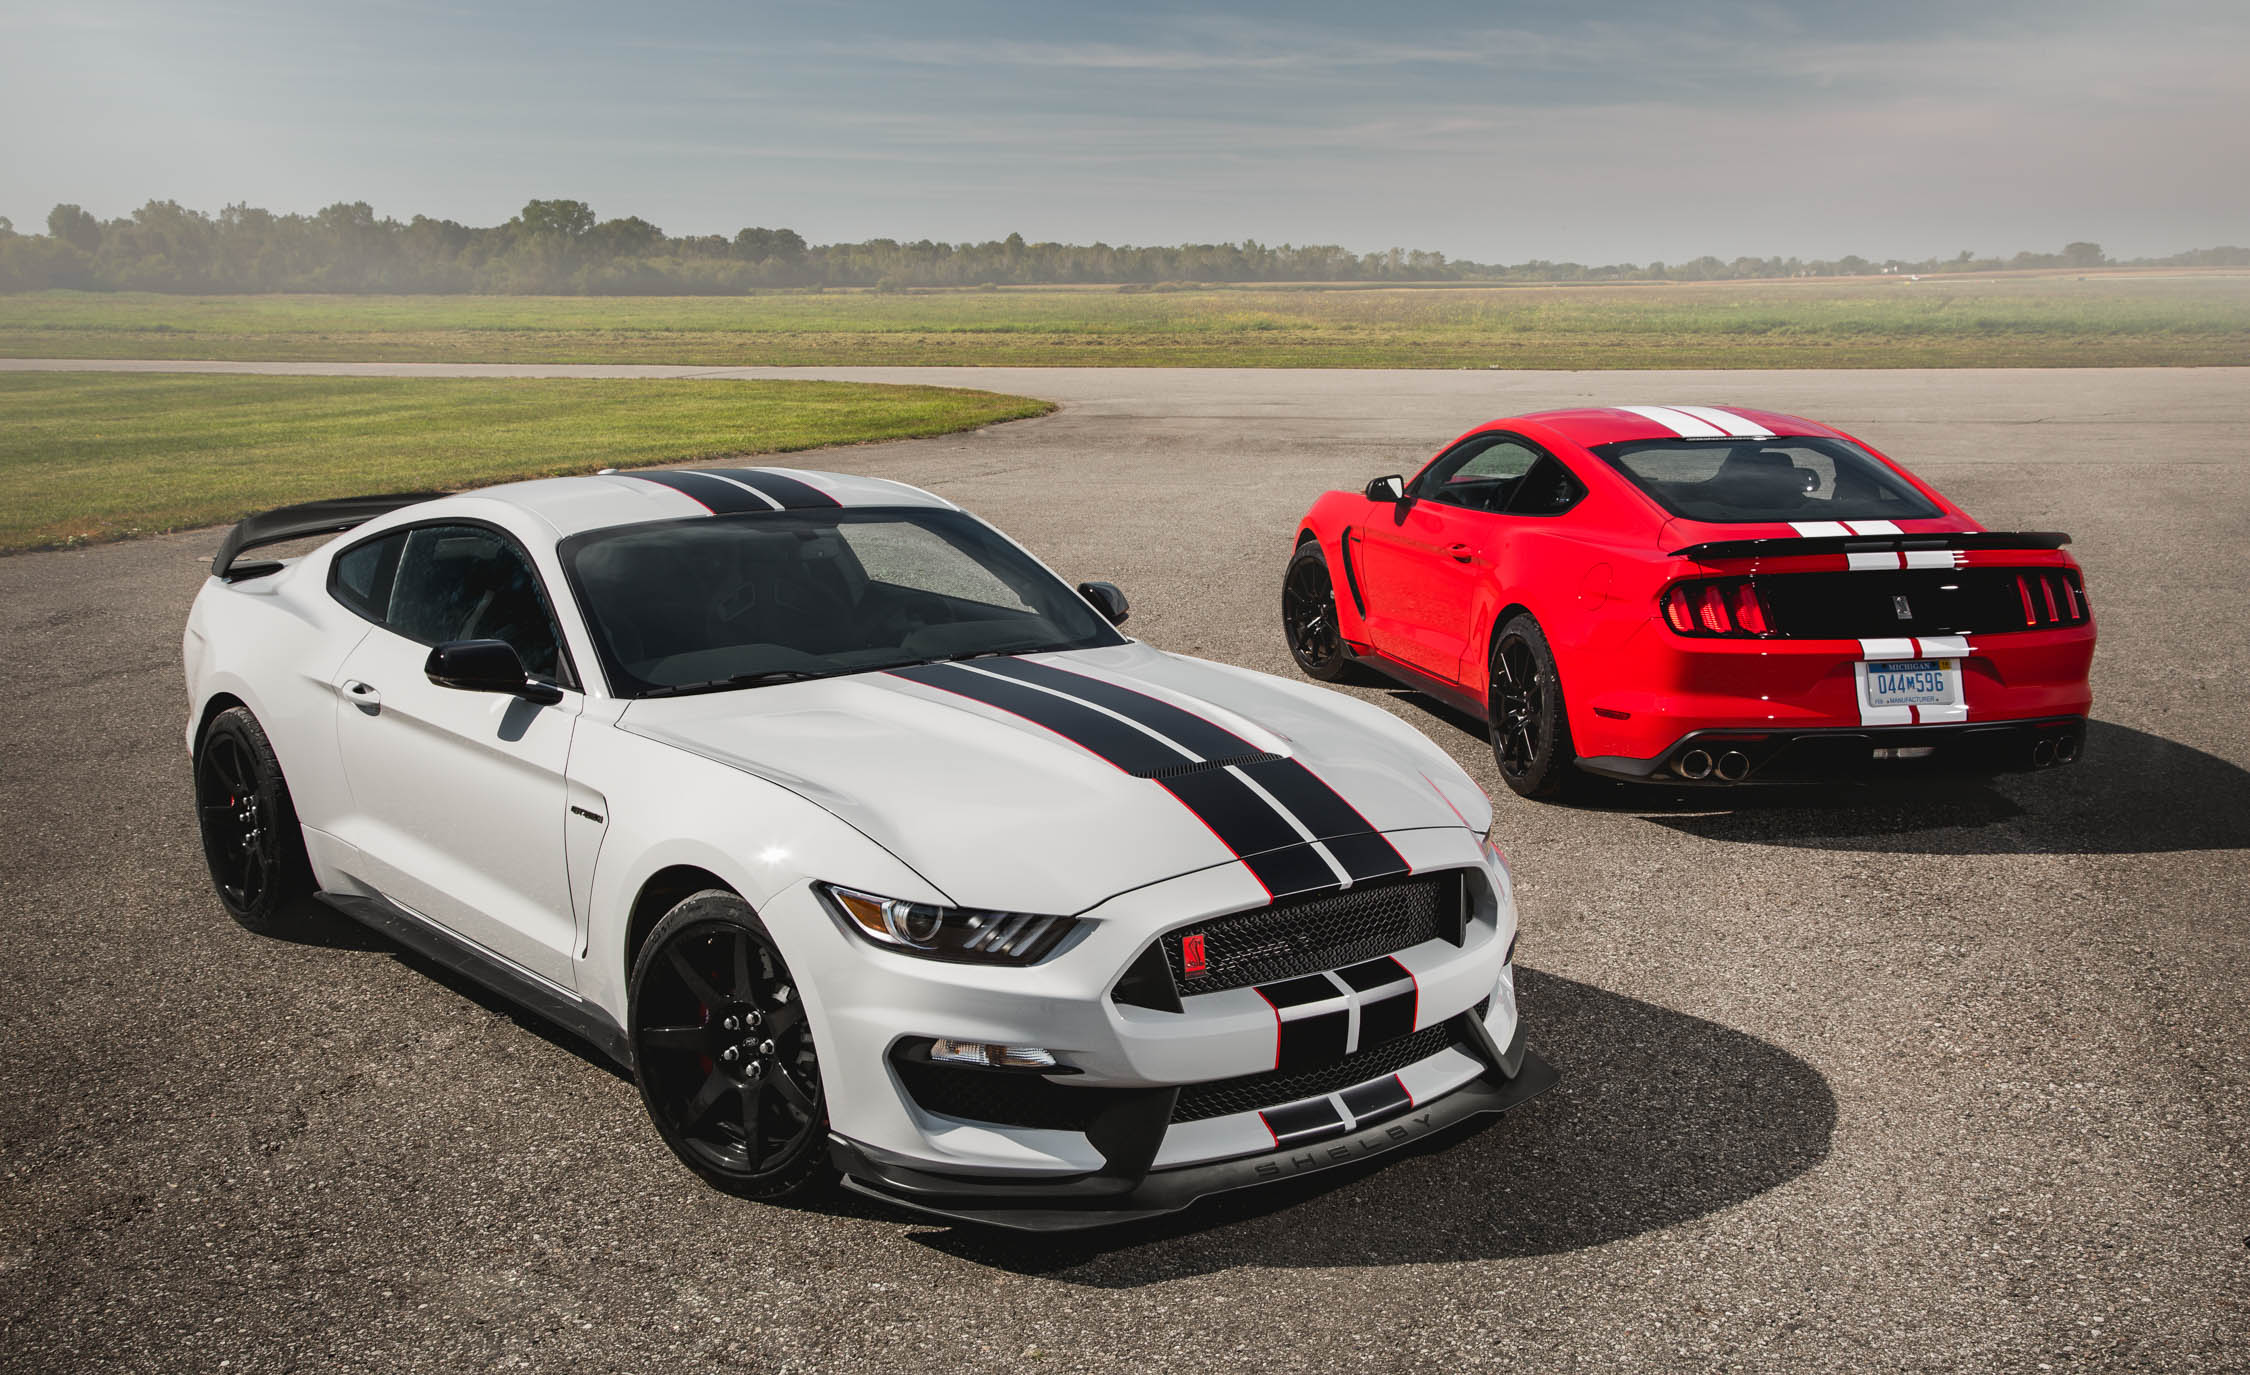 Ford Mustang Shelby Gt350r New 2016 Ford Mustang Shelby Gt350r And Gt350 7869 Cars